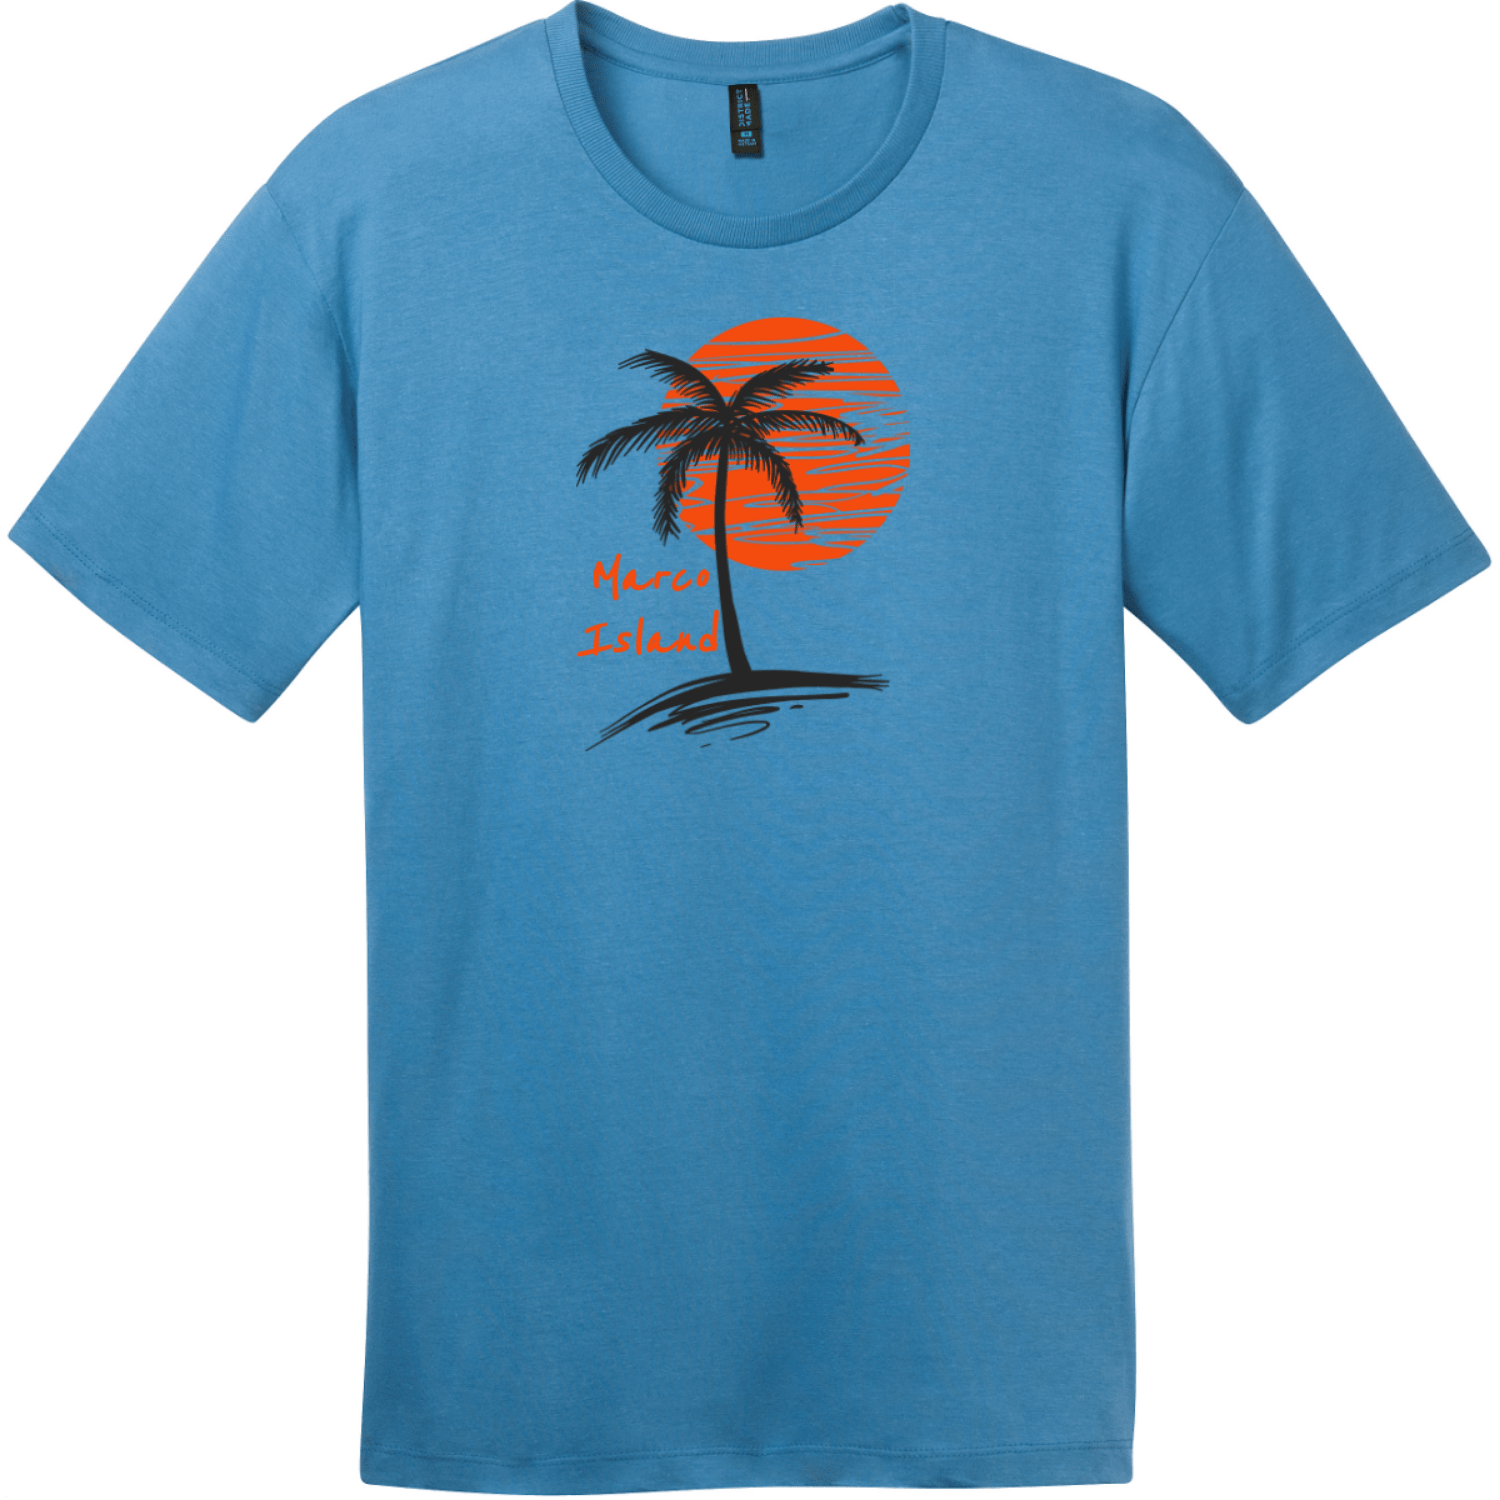 Marco Island Florida Palm Tree T-Shirt Clean Denim District Perfect Weight Tee DT104